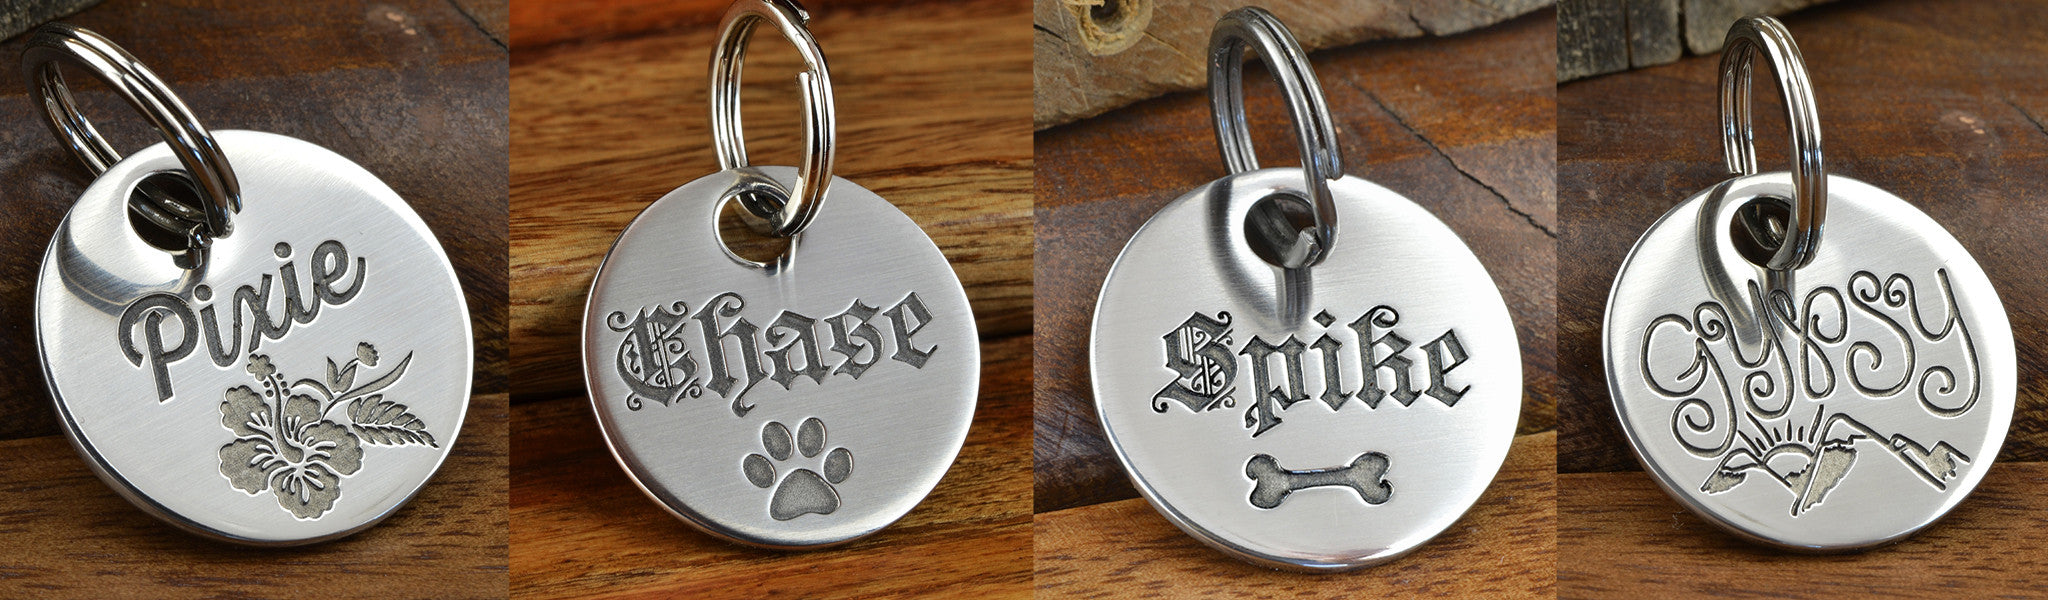 Pet ID Tag Types